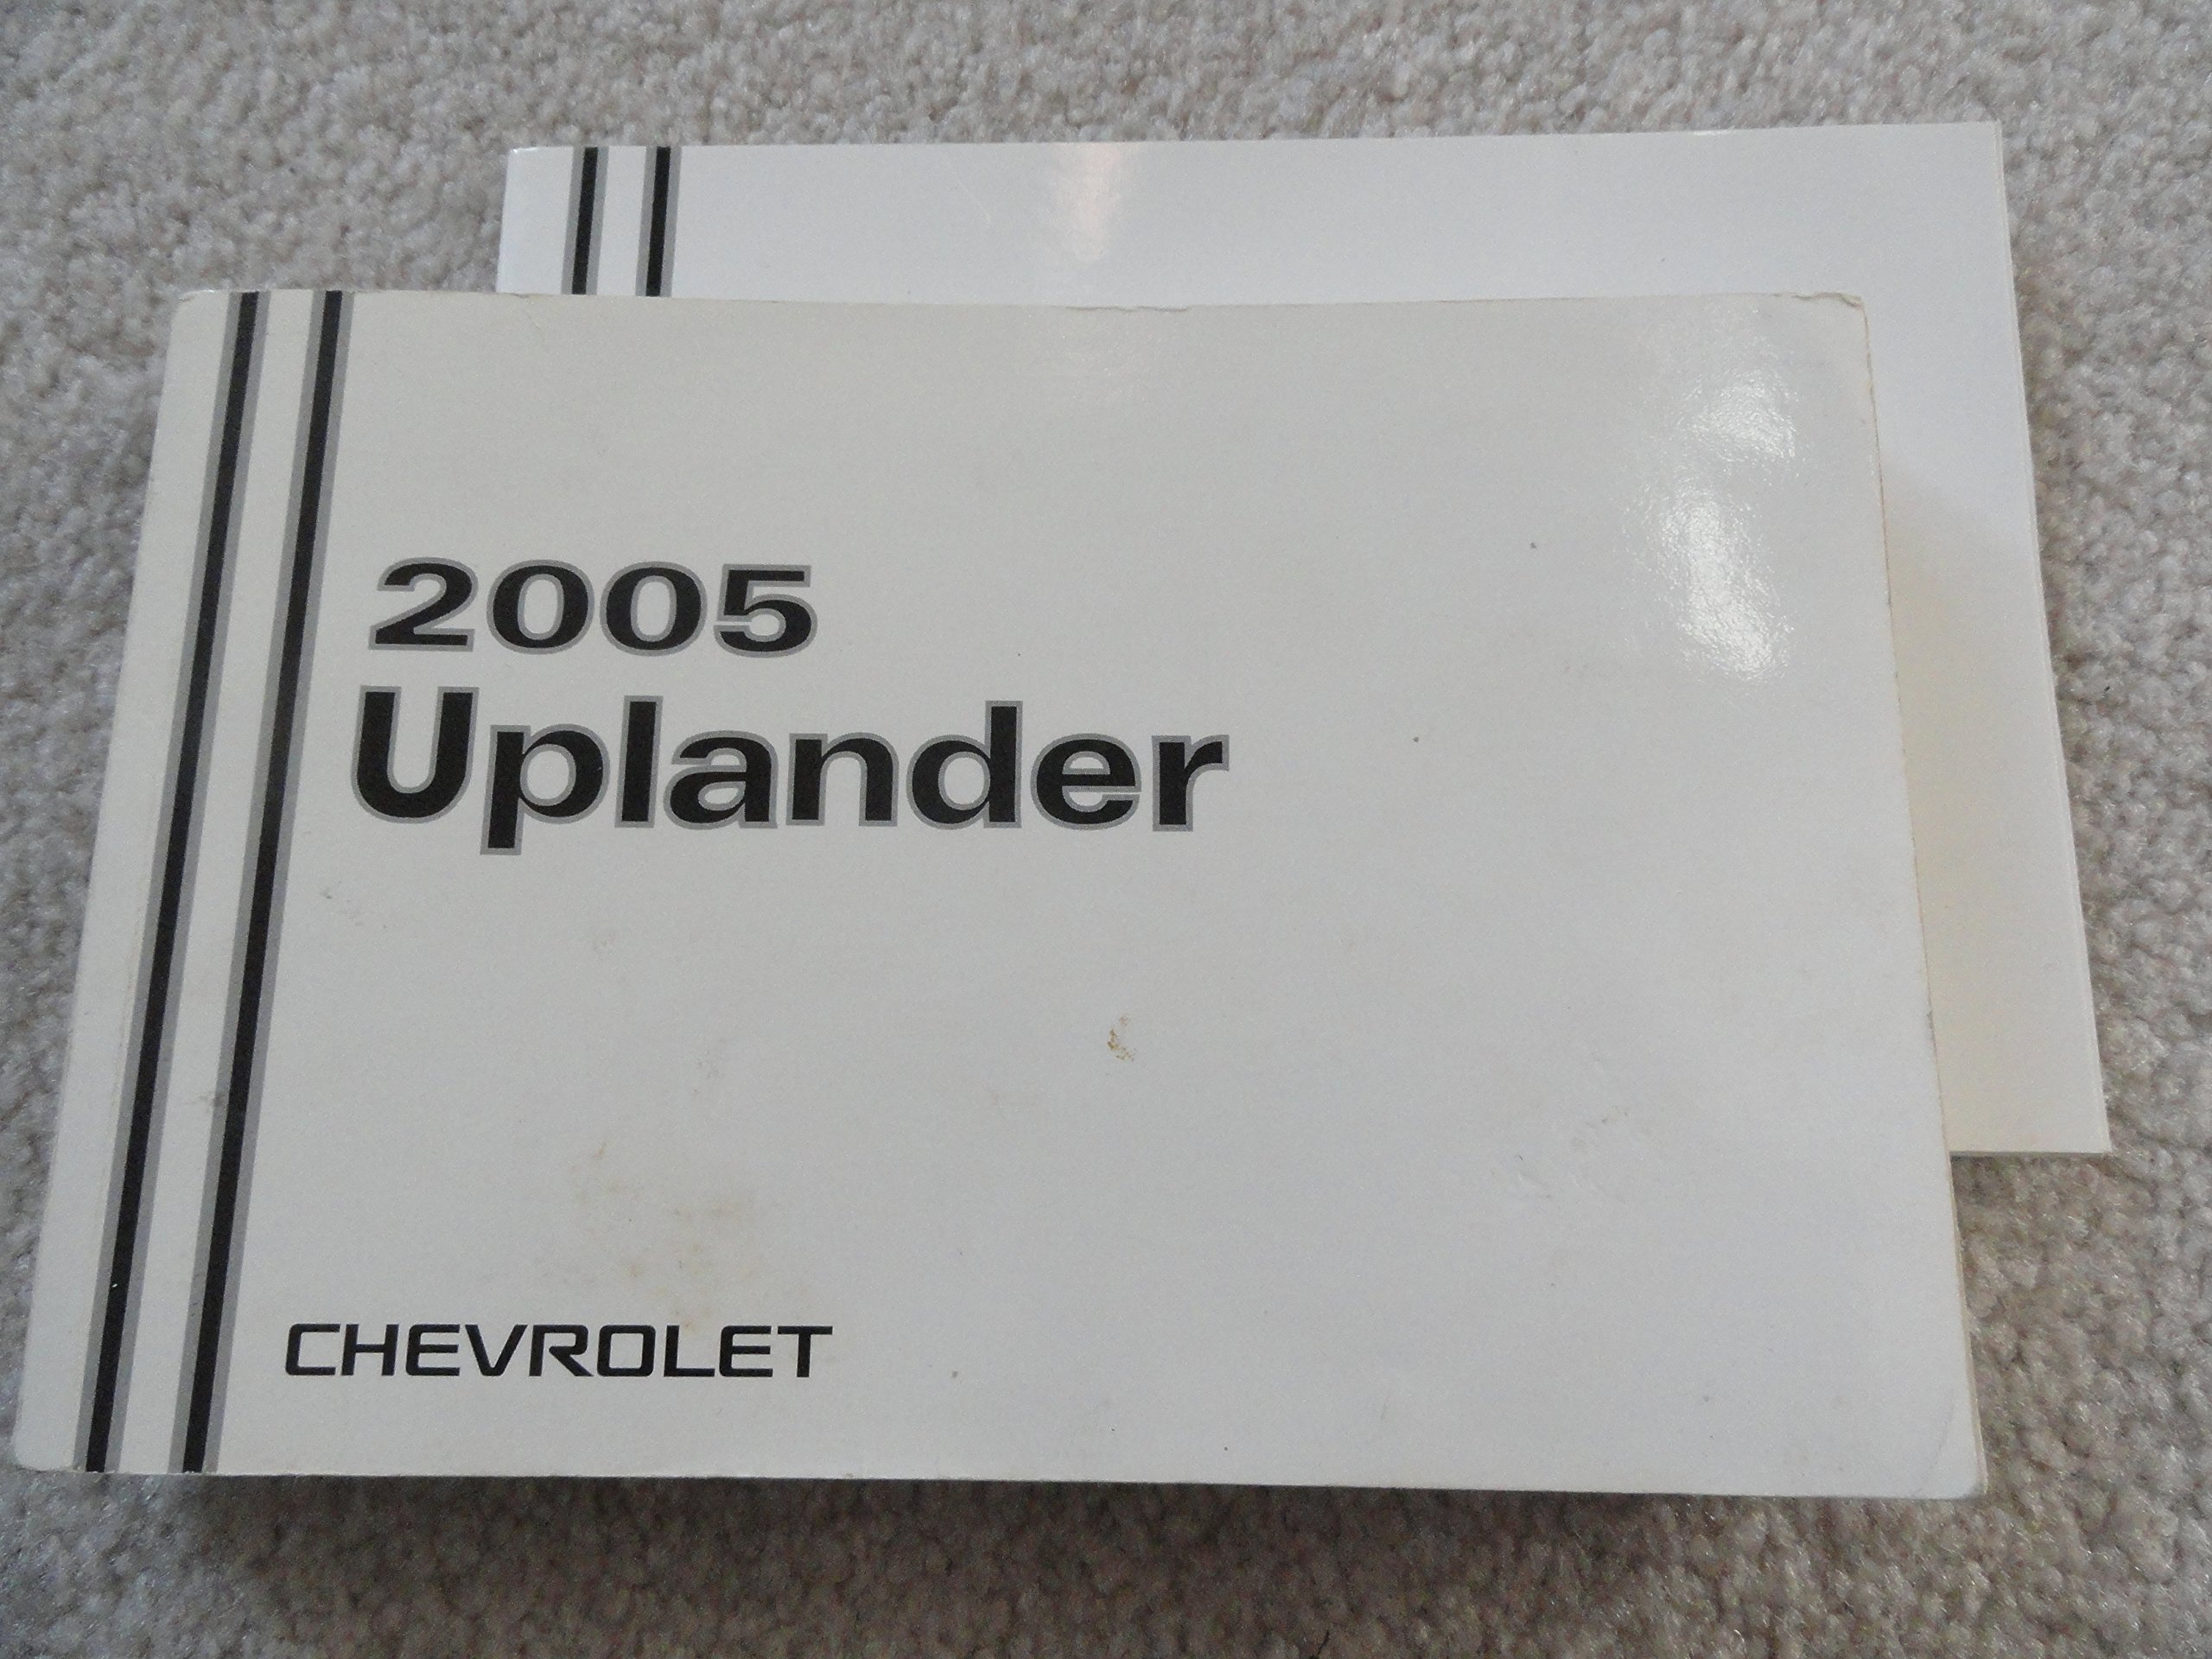 amazon com 2005 chevrolet uplander owners manual chevrolet books rh amazon com 2005 Chevy Uplander Service Manual 2007 Chevy Uplander Service Manual